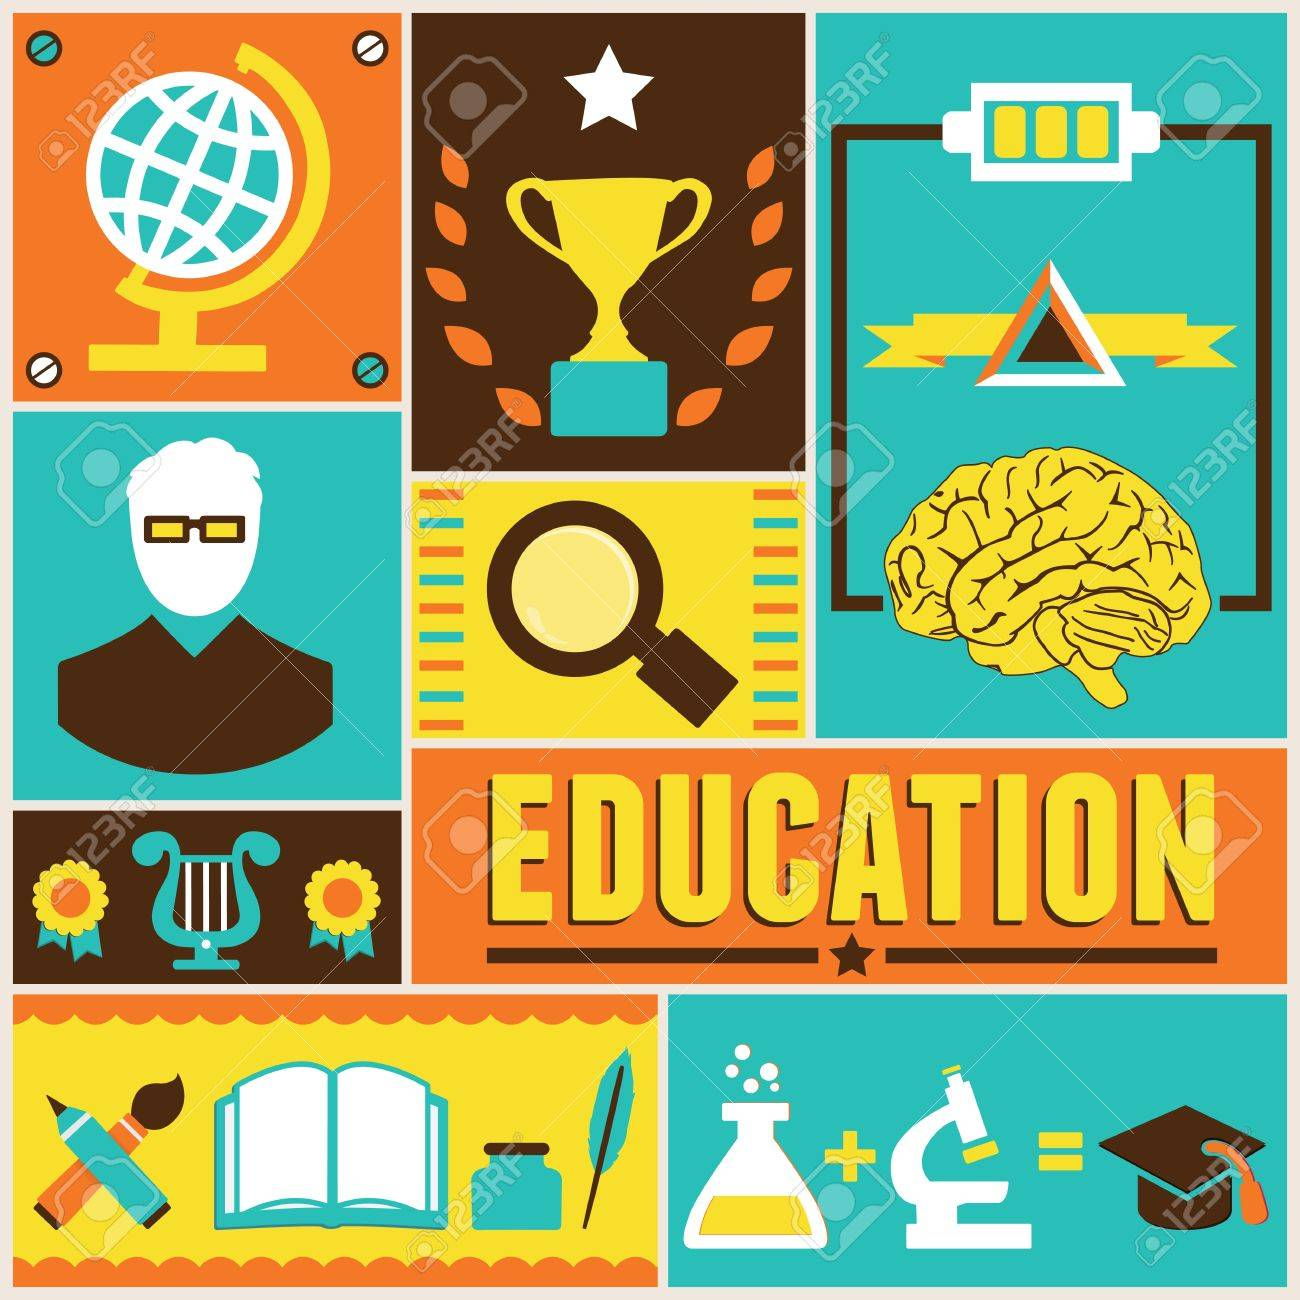 Retro Poster Of Education Royalty Free Cliparts, Vectors, And ...